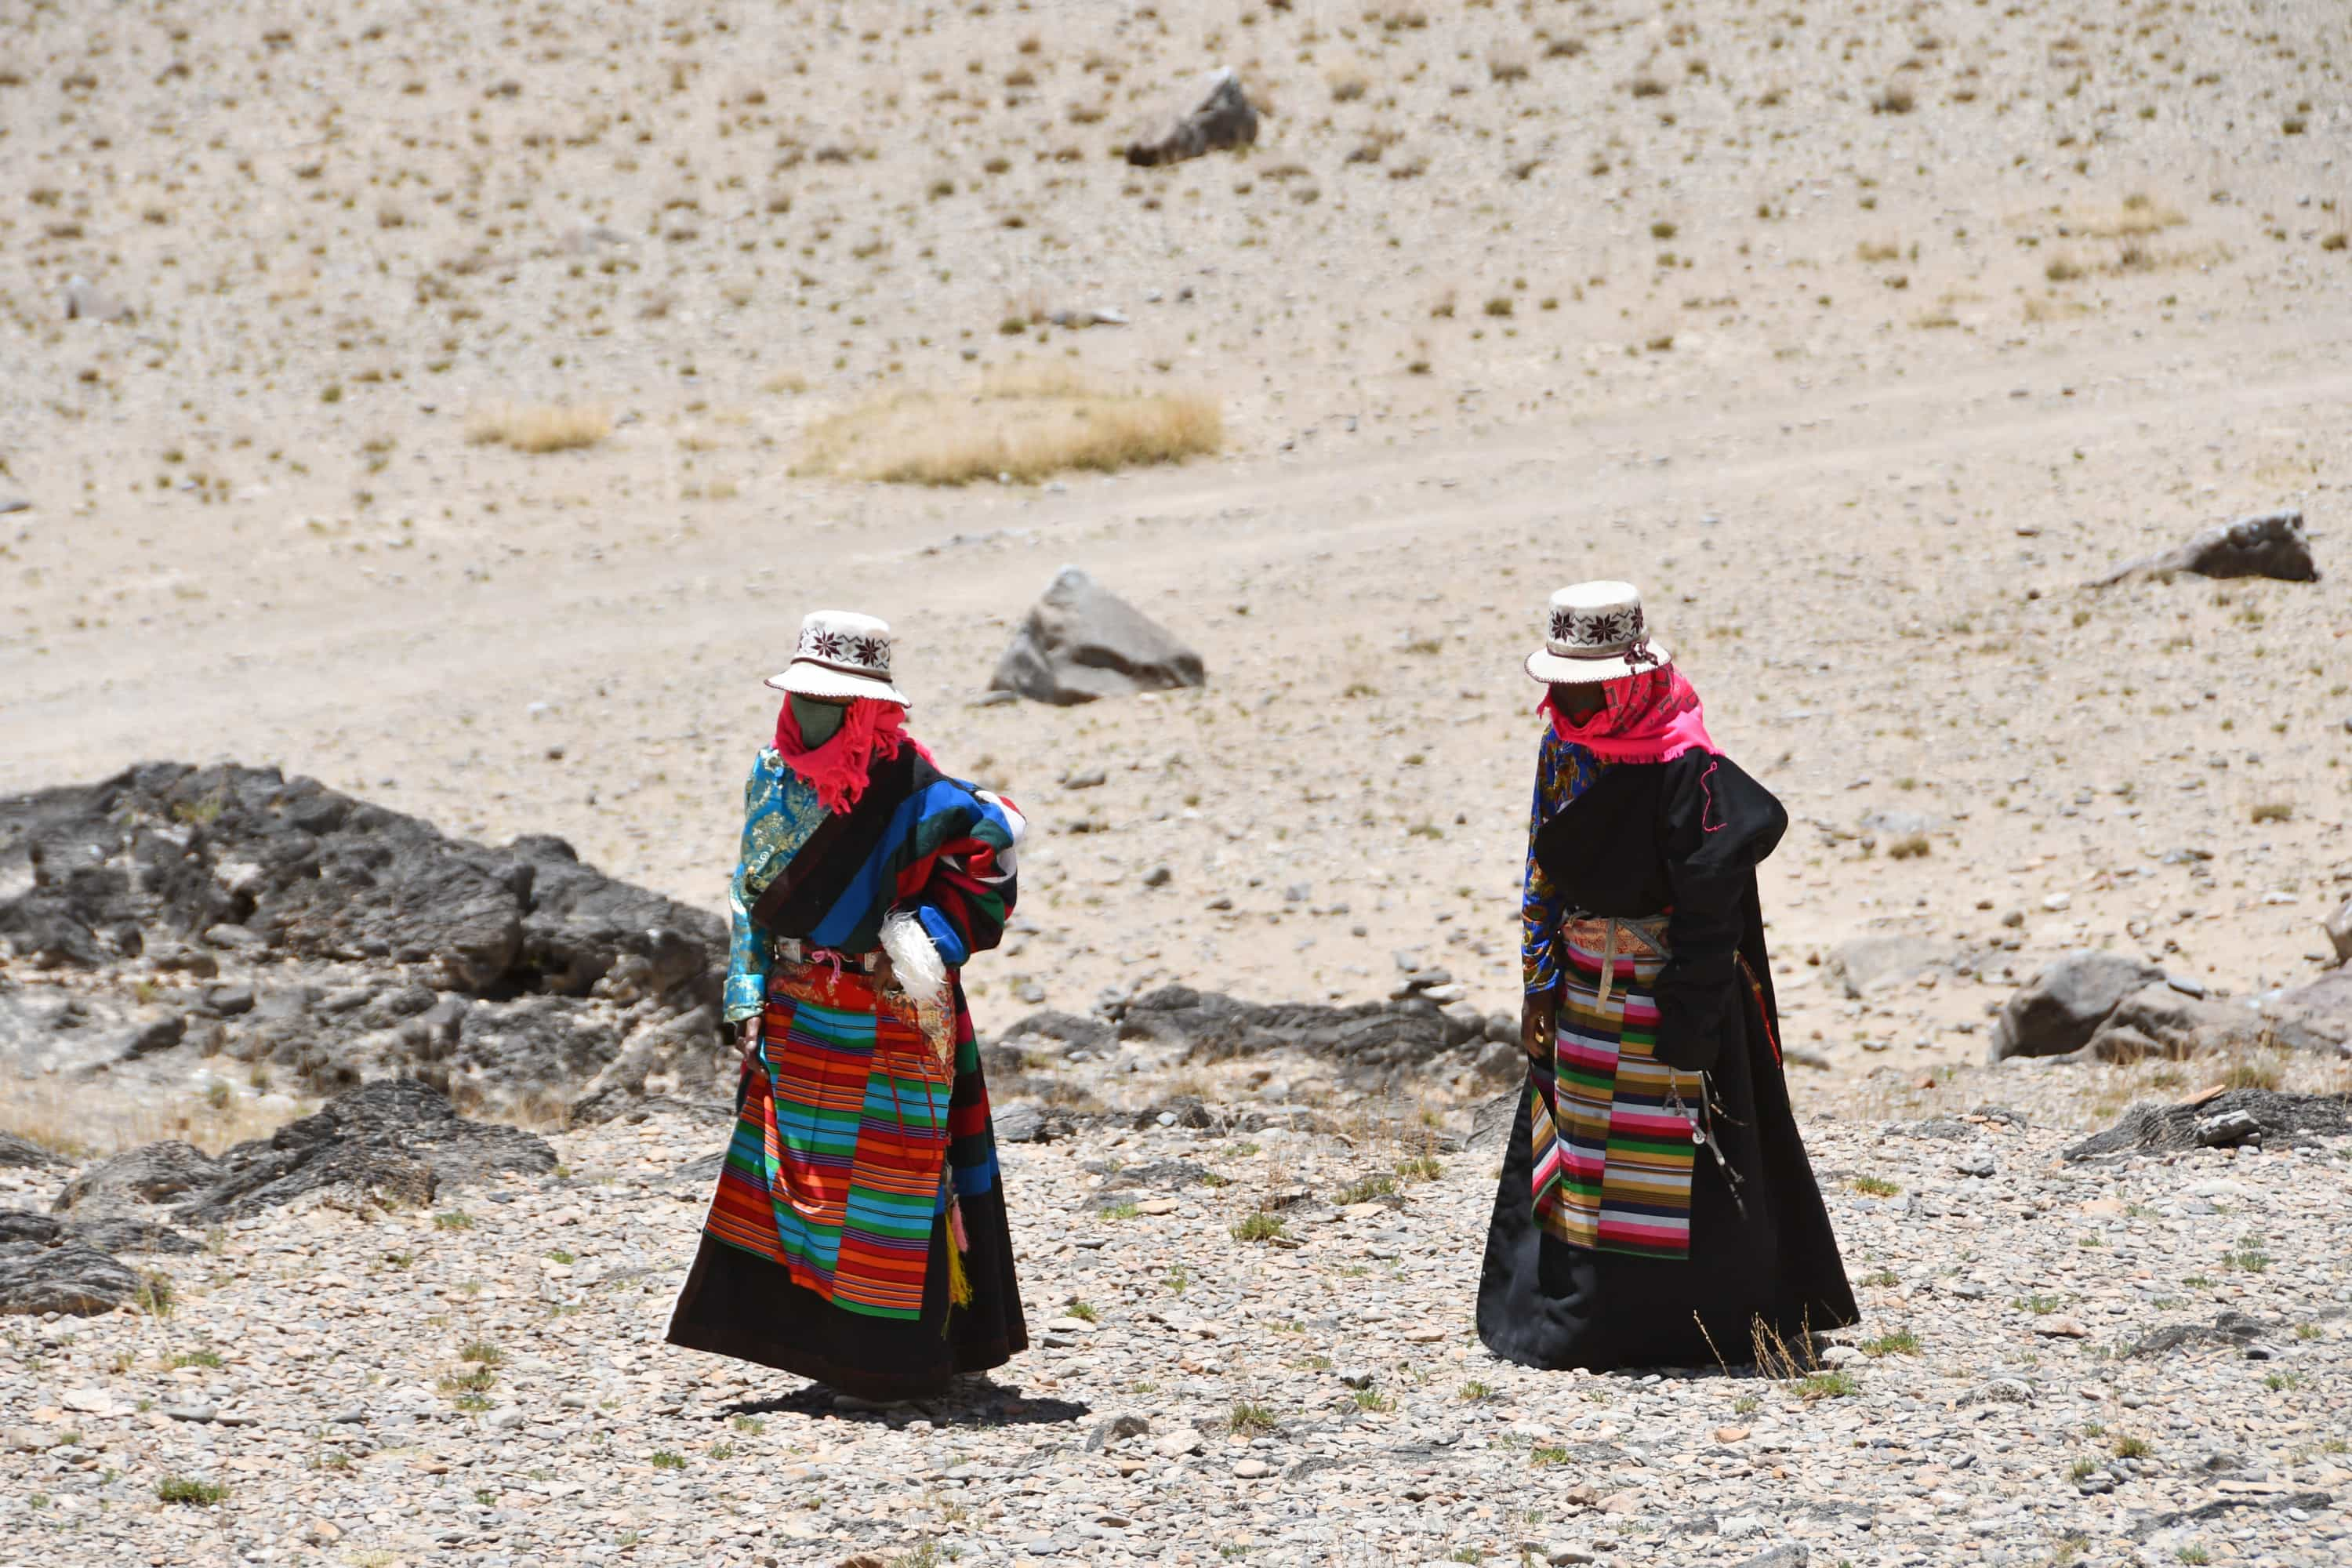 Tibetan women walking sacred kora around Namtso lake in Tibet